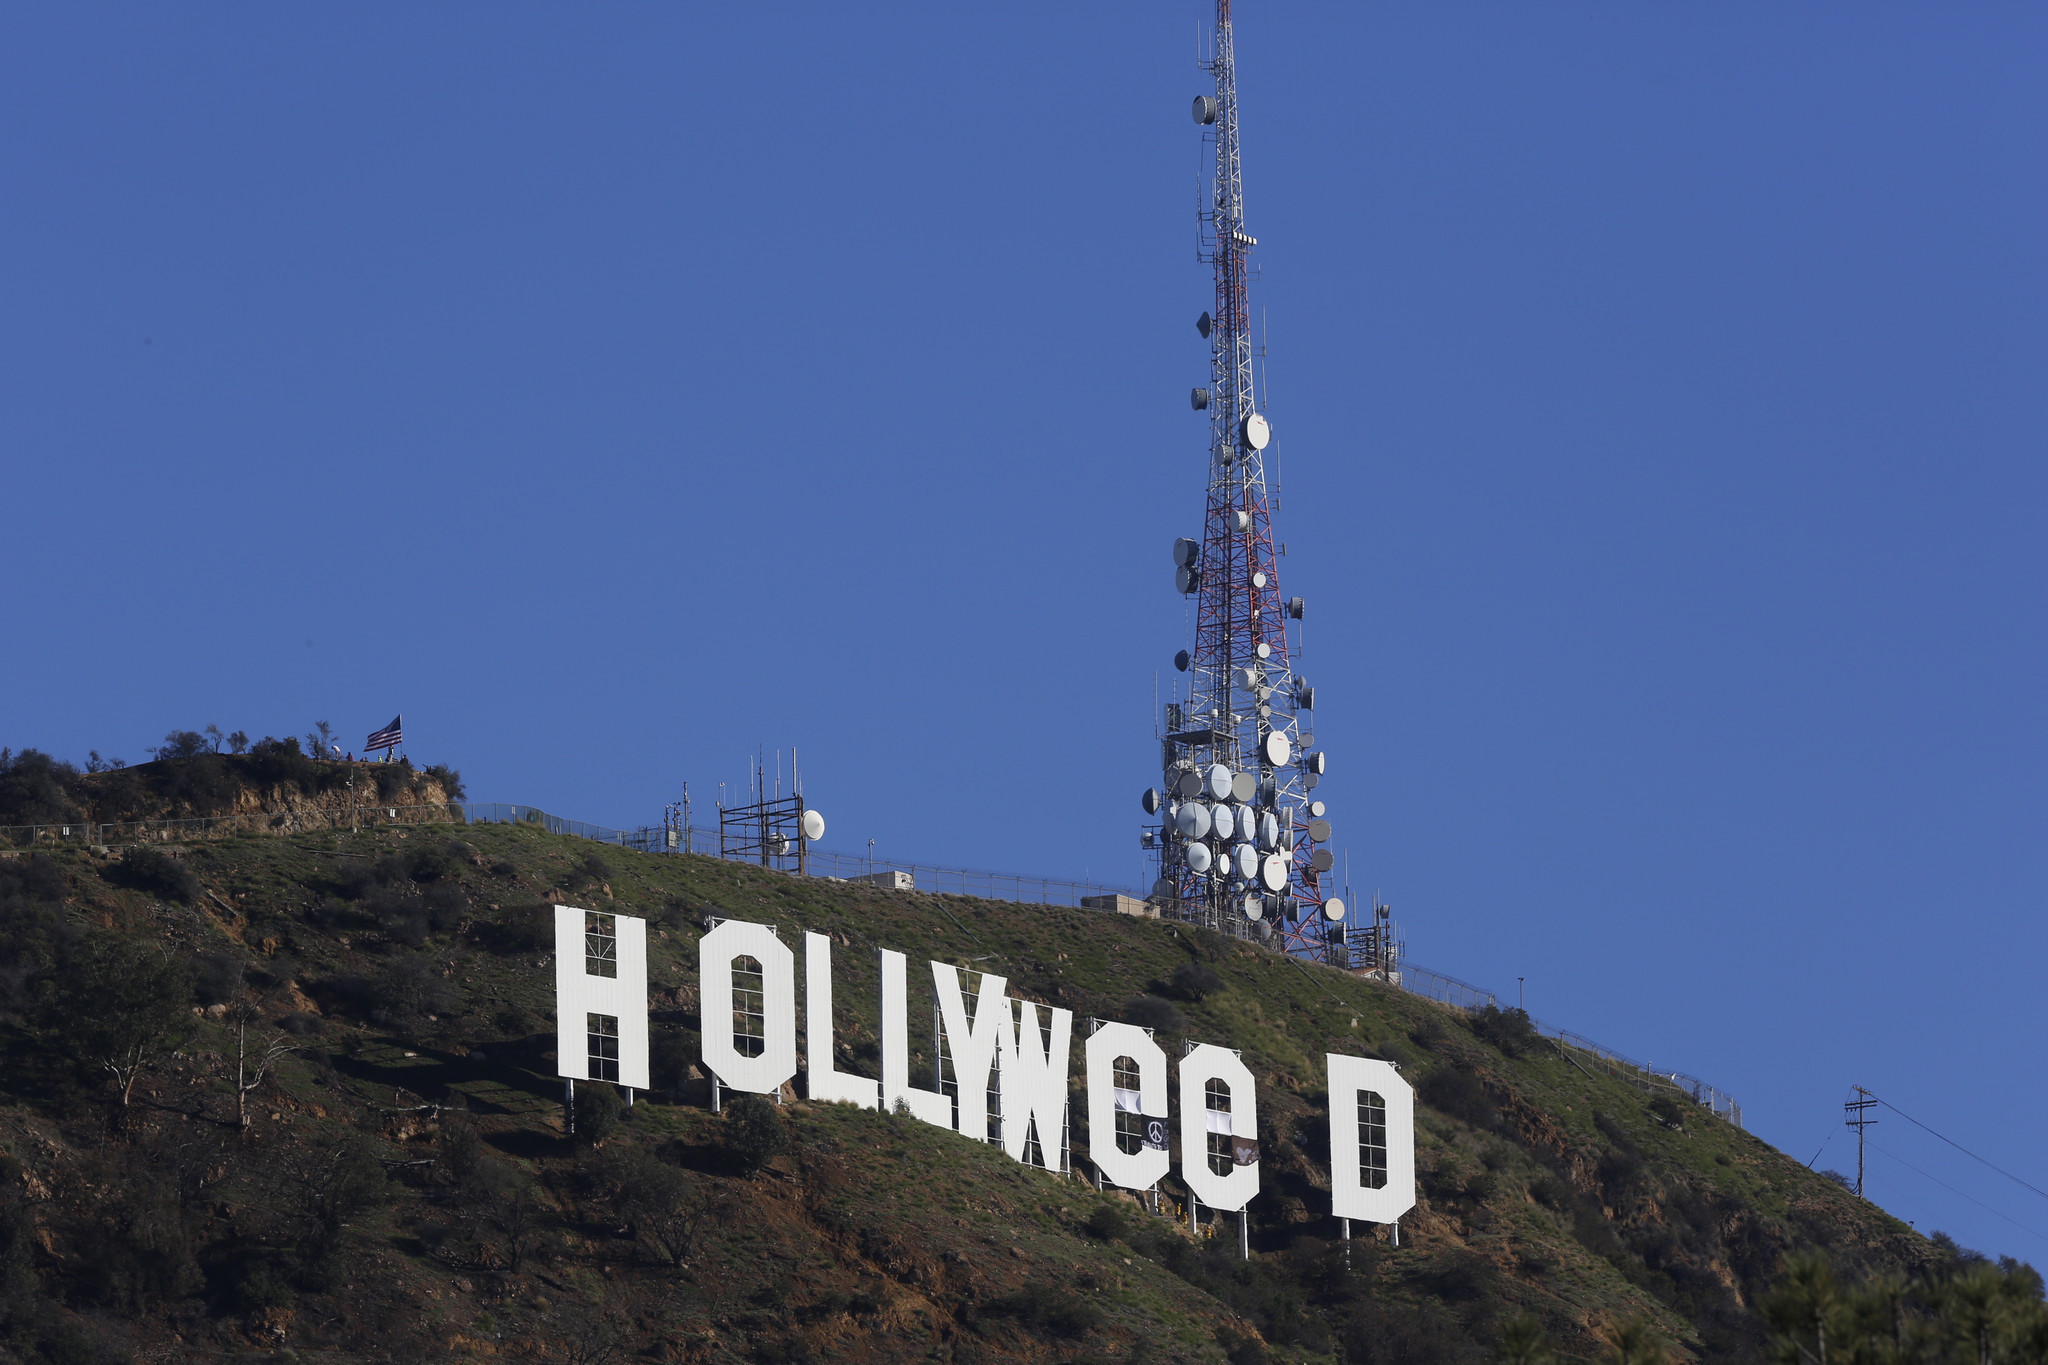 Hollywood sign could get extra security after 'Hollyweed' prank - Chicago  Tribune